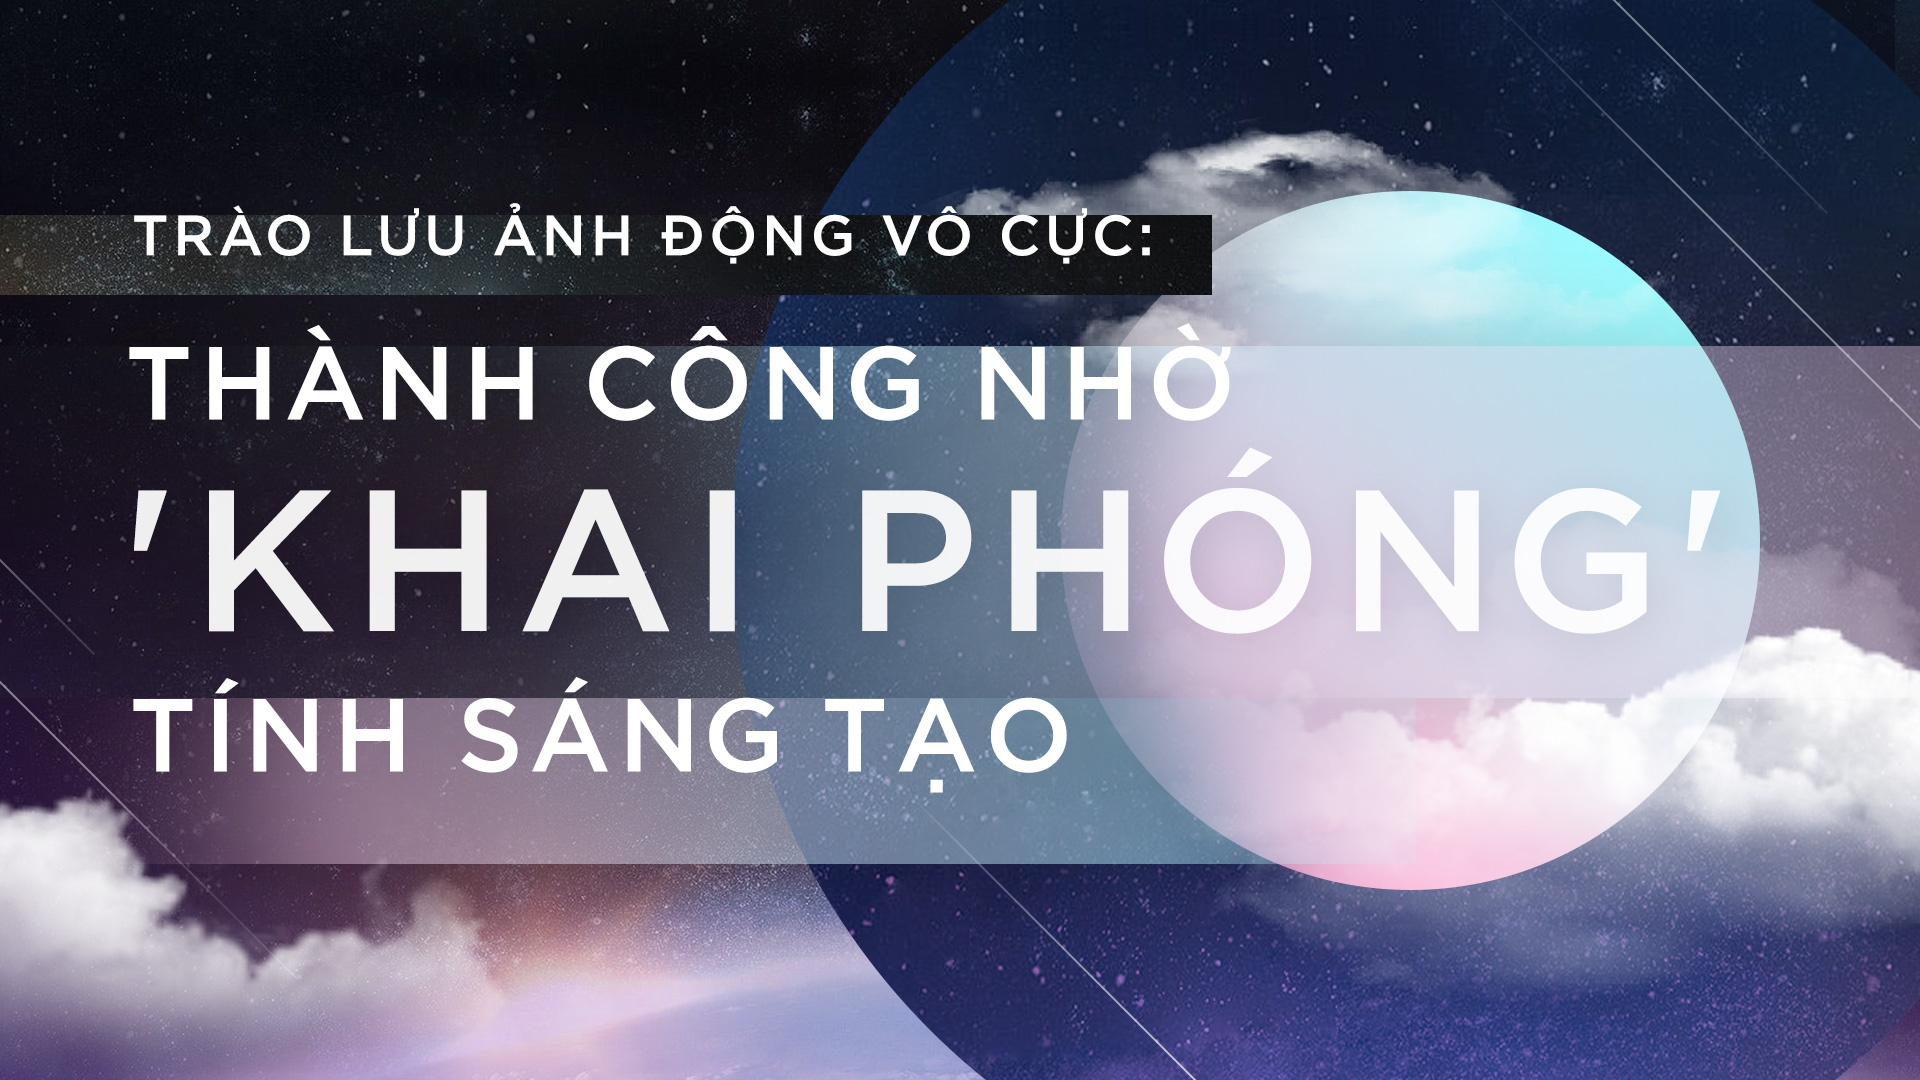 anh dong vo cuc anh 1